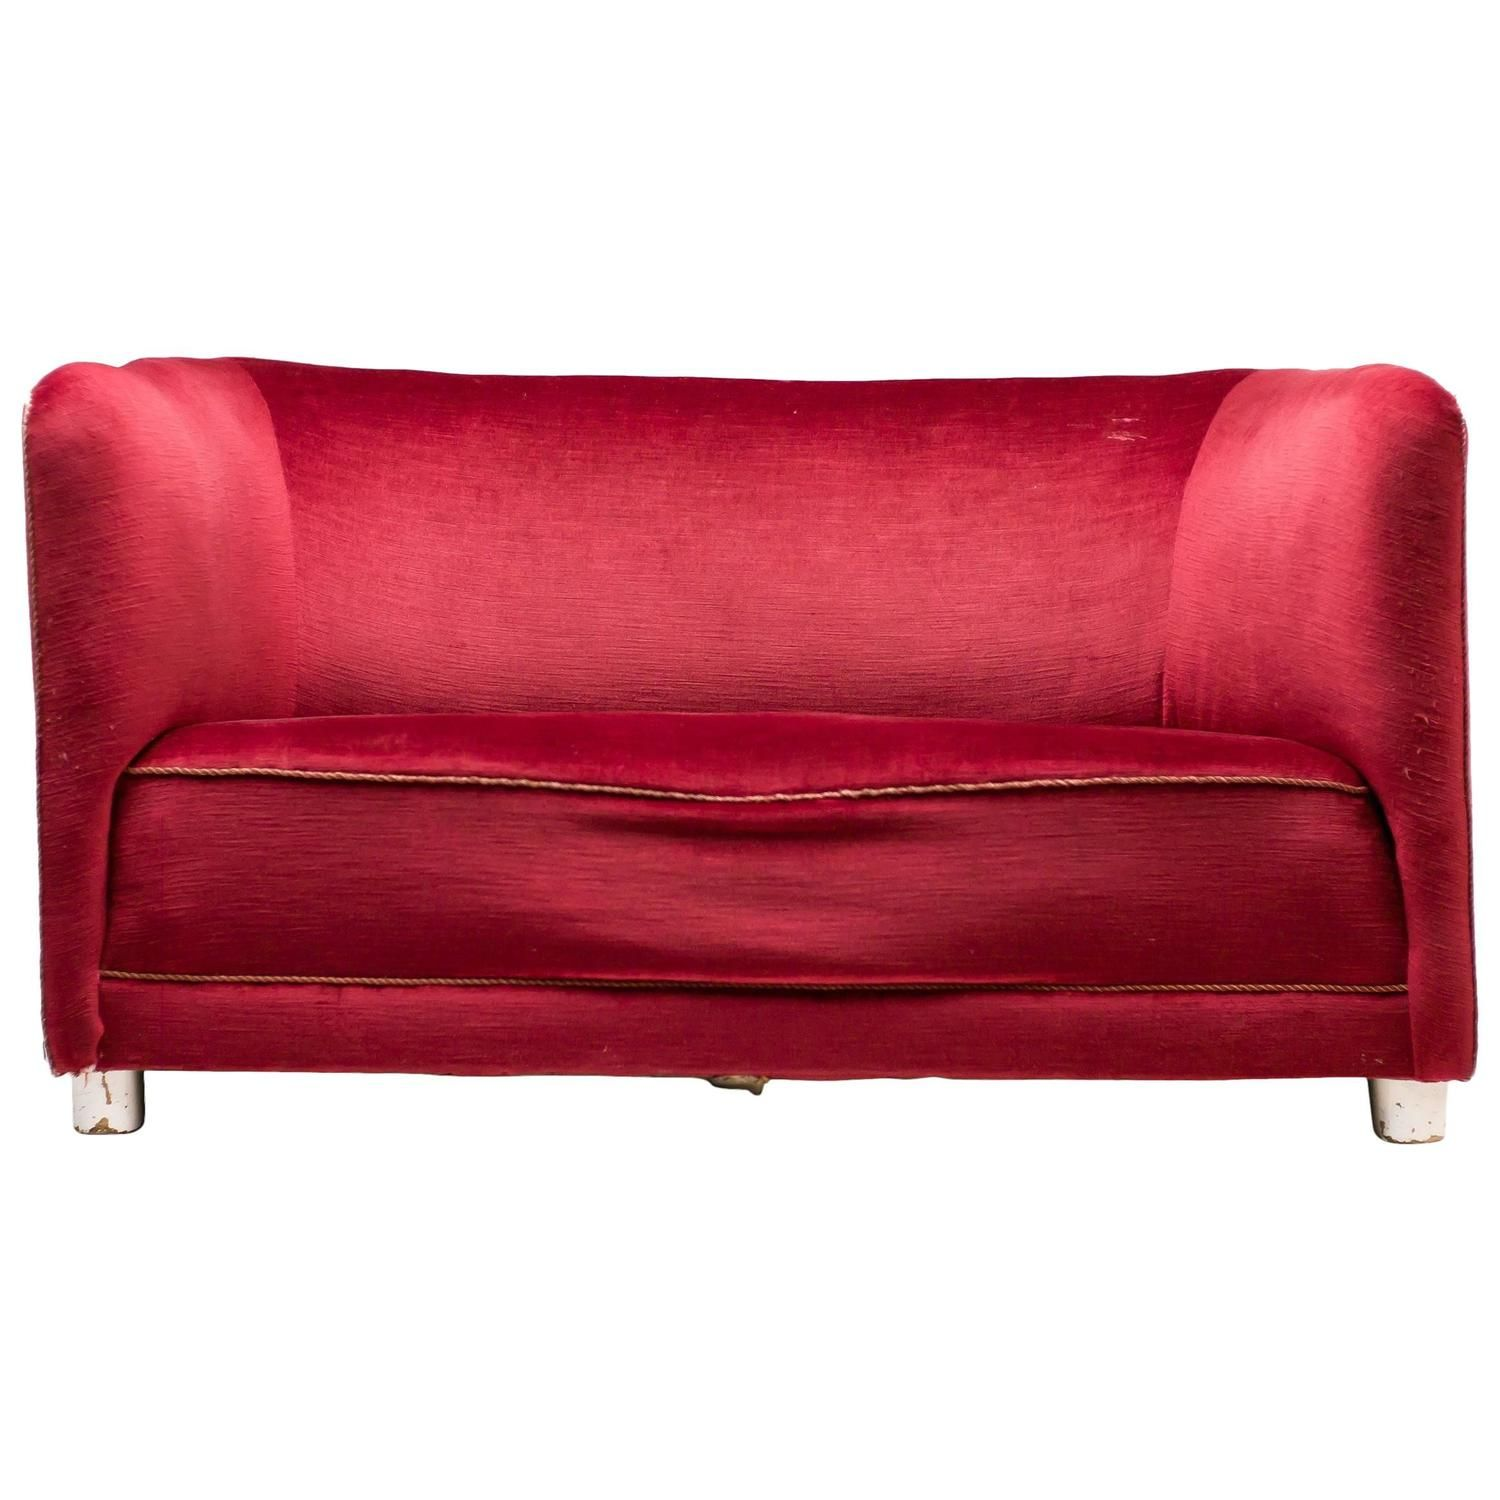 1930s red velvet sofa by ole wanscher for fritz hansen my 1stdibs rh pinterest com